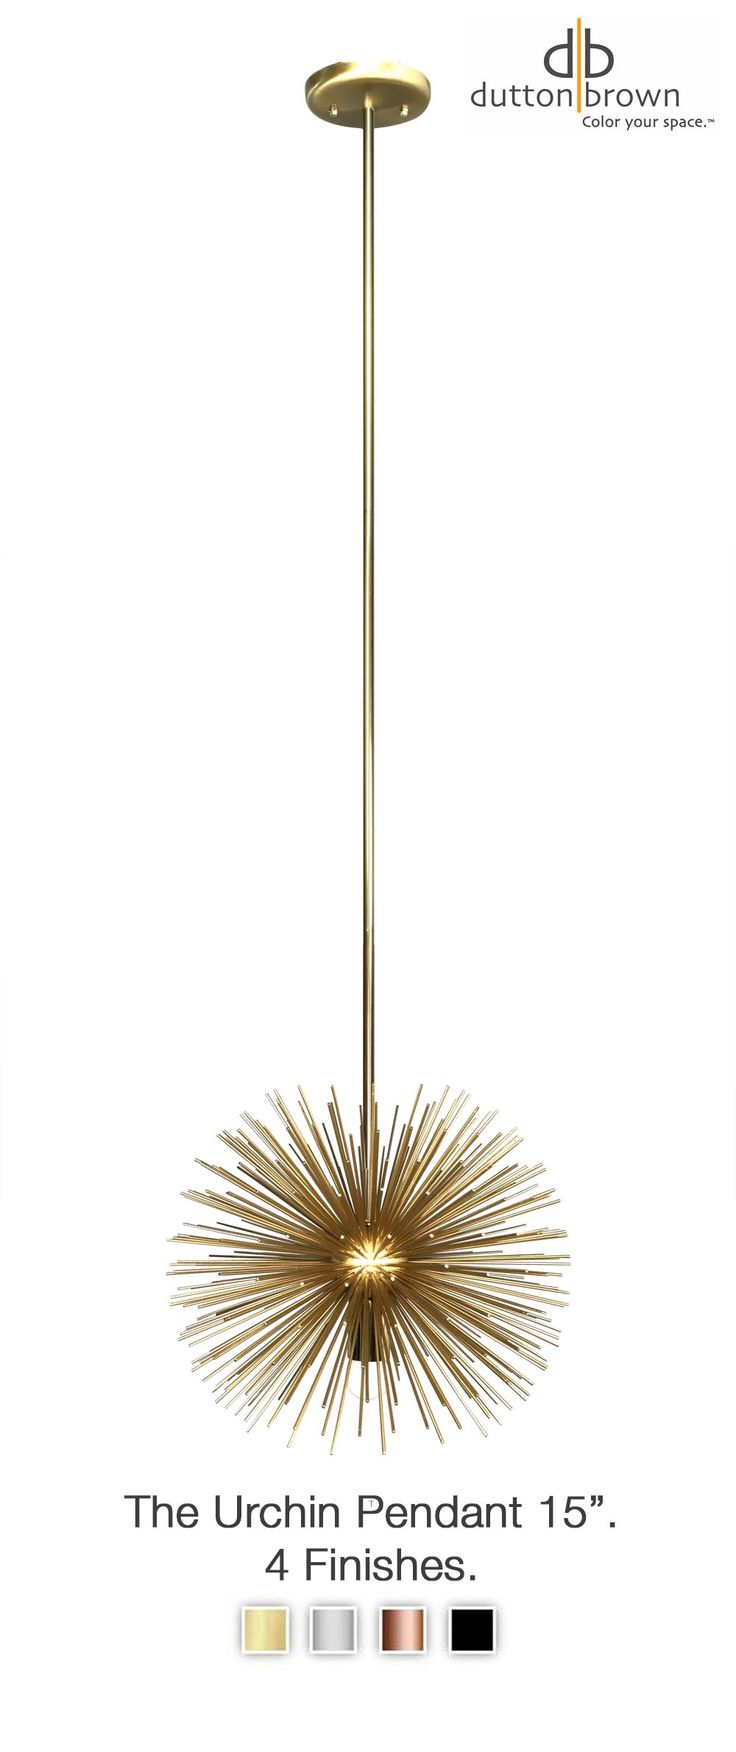 The urchin pendant is the perfect statement lighting for small spaces and is perfect for styles midcentury to modern to traditional. Click through to see more finishes great in a nursery or kidsroom, flanking a bed, in pairs over a kitchen island, or grouped in a foyer. All light fixtures are designed and handmade in Minneapolis.